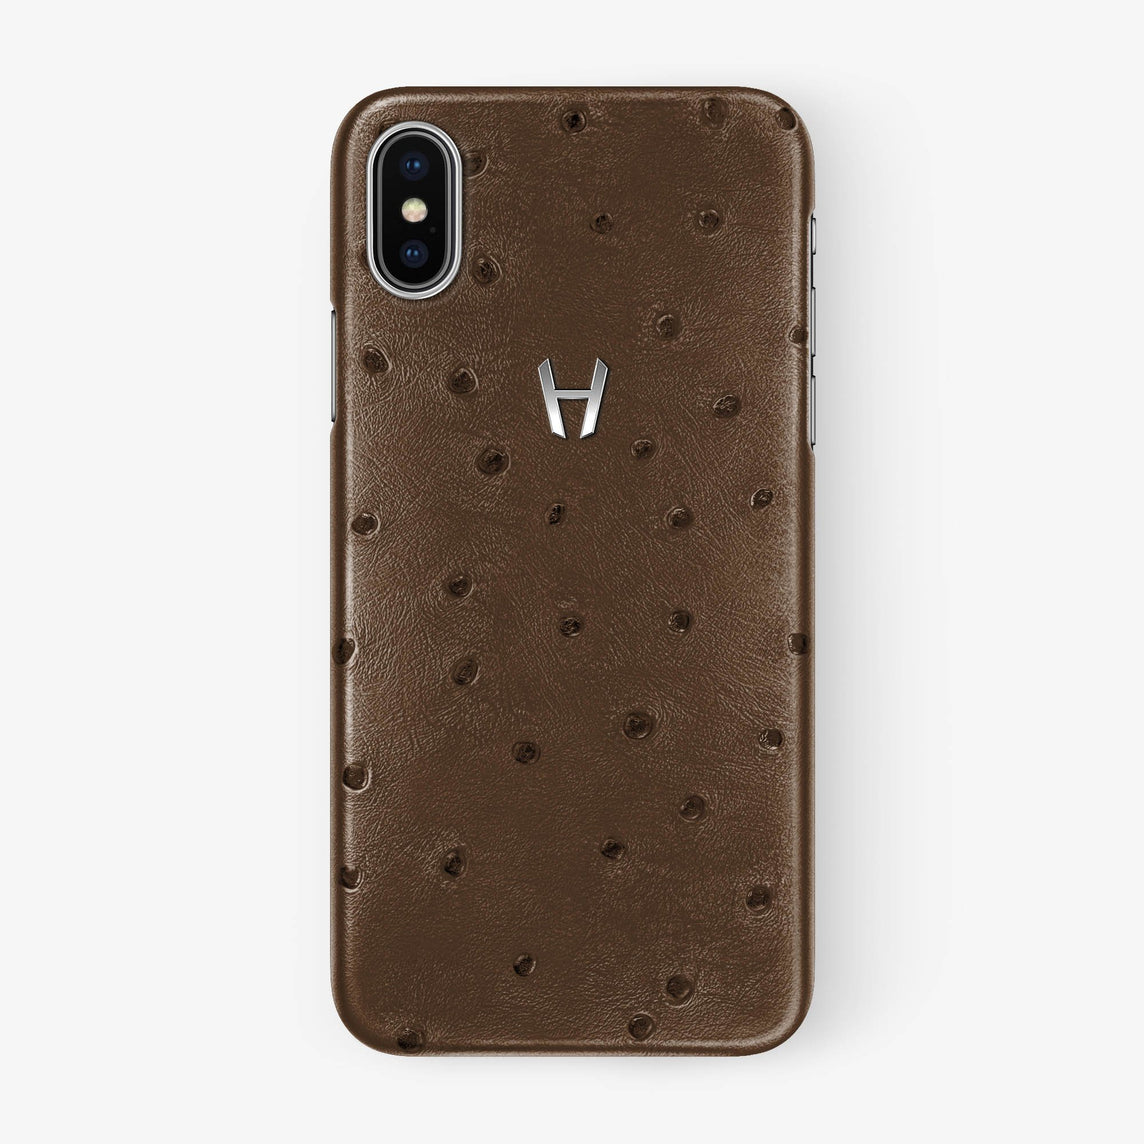 Ostrich Case iPhone X/Xs | Tobacco - Stainless Steel withouth-personalization